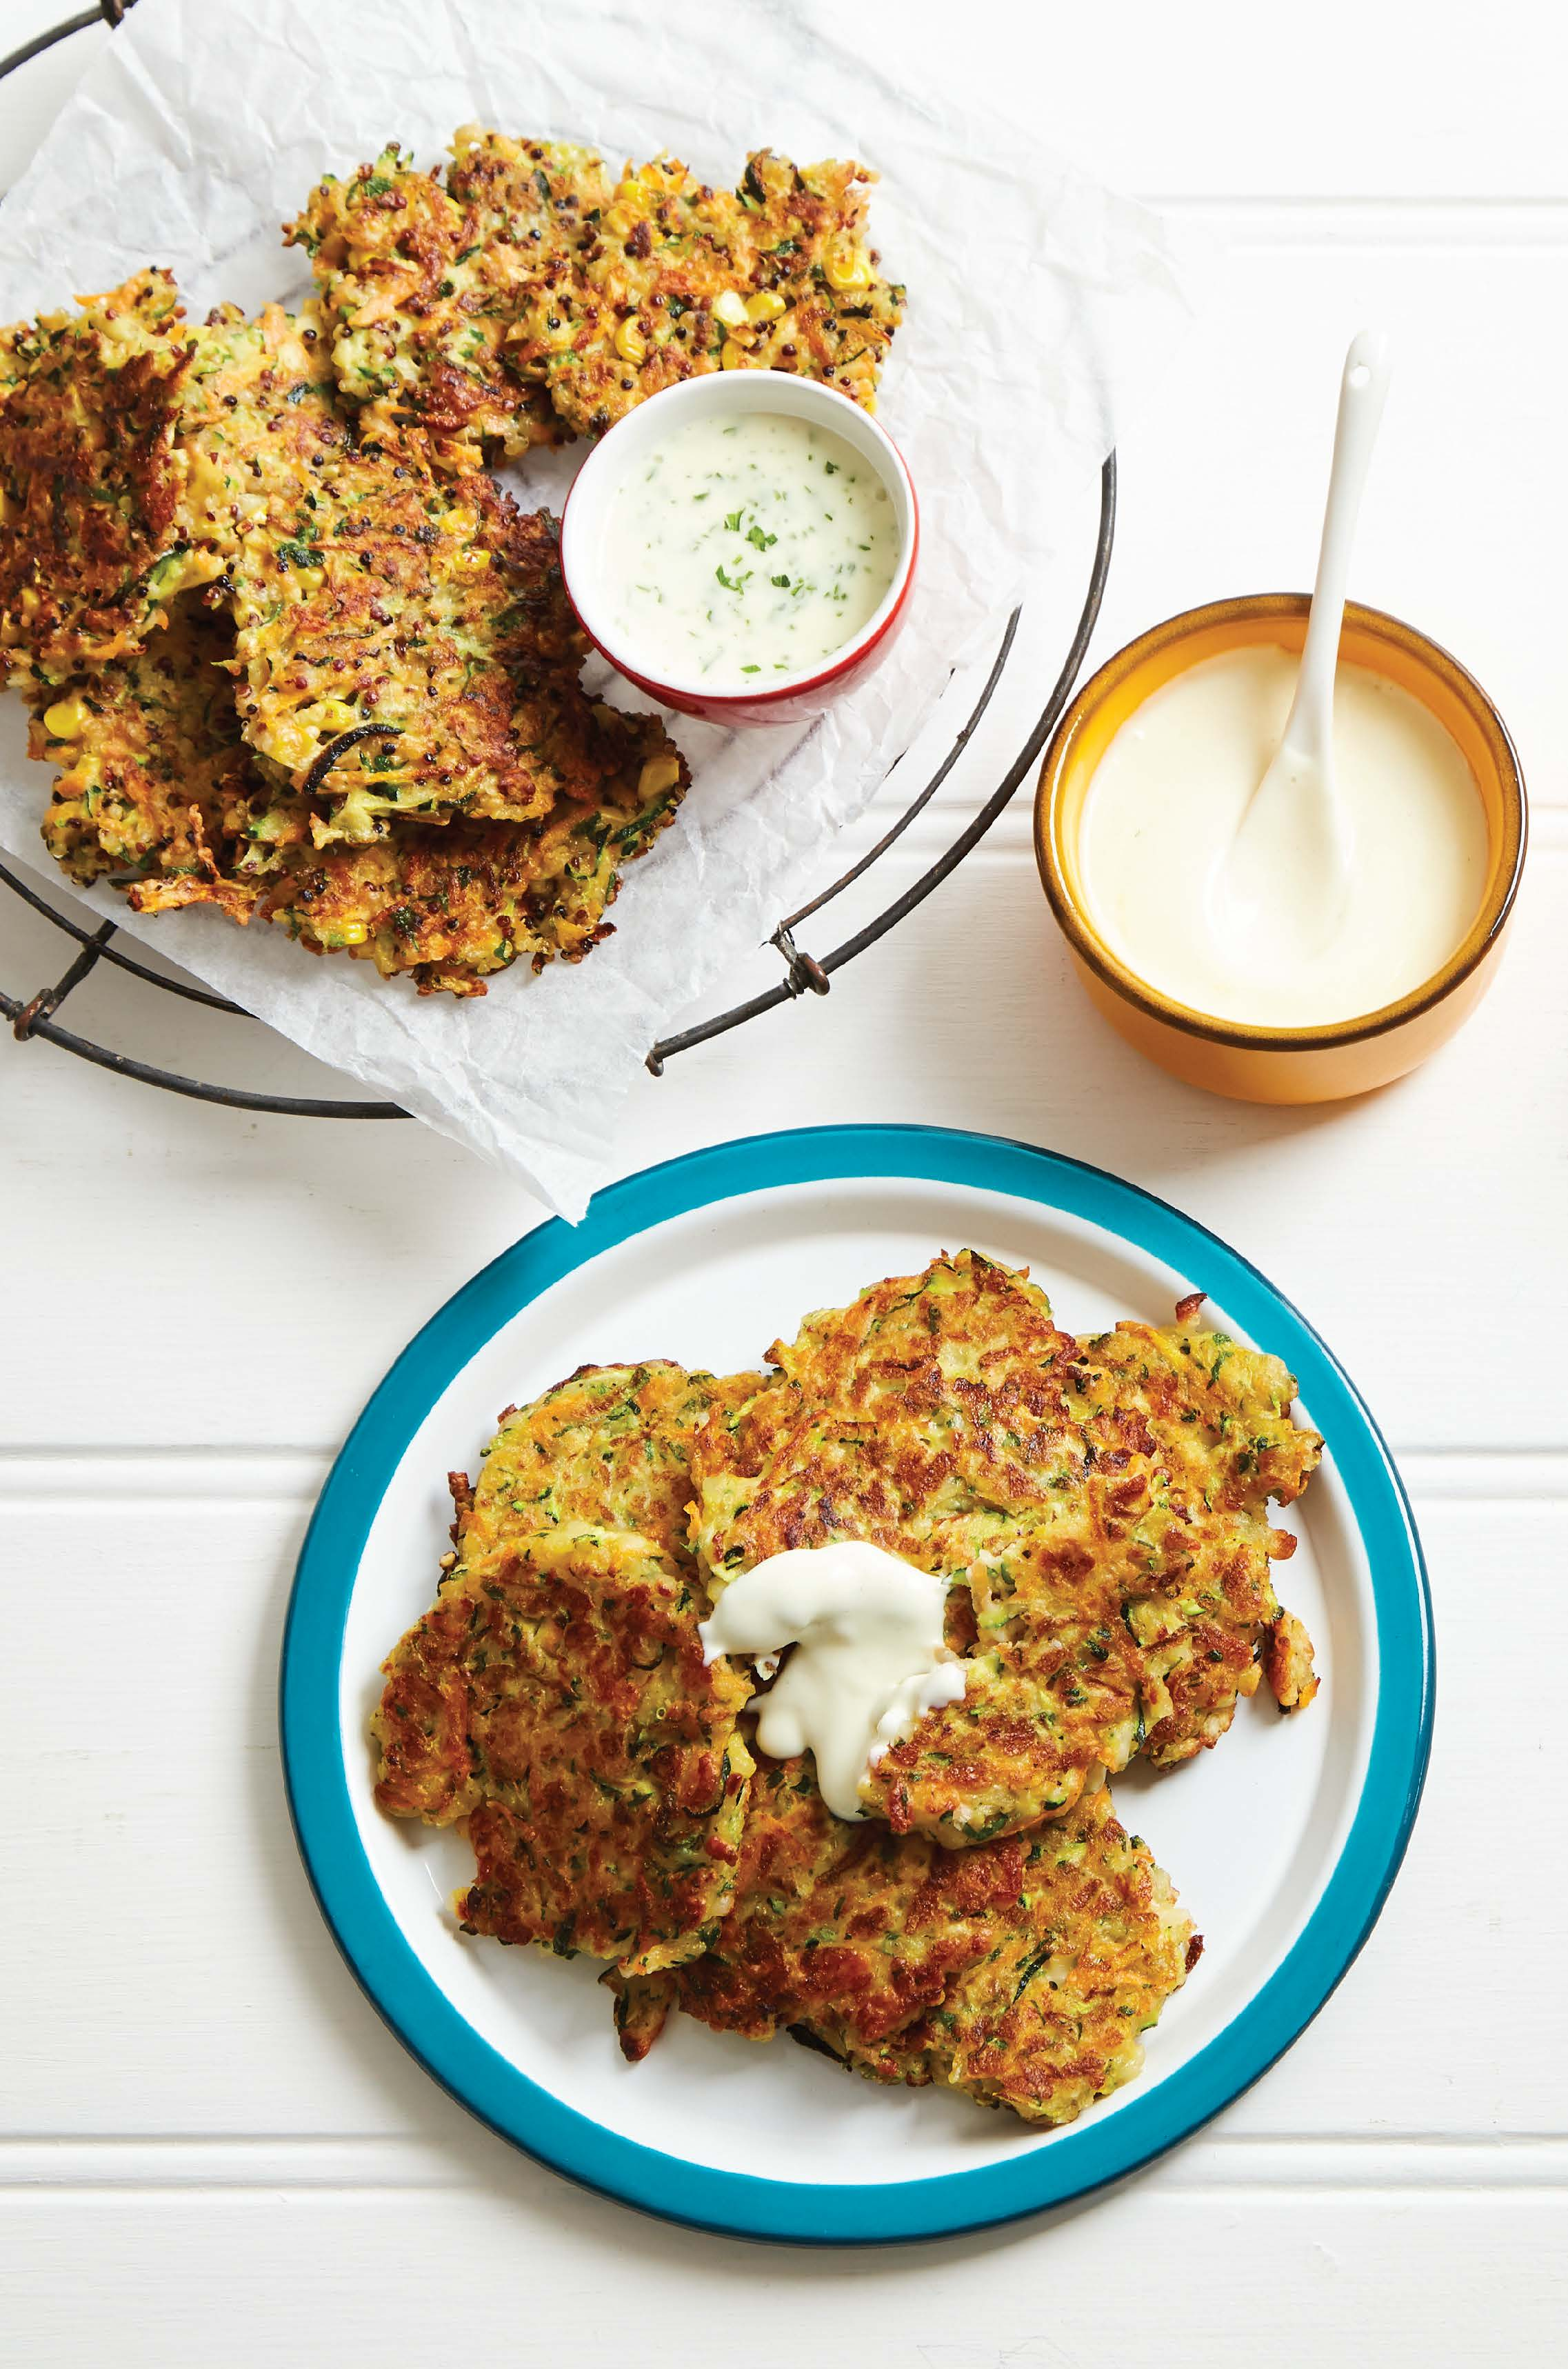 Colourful vegetable and haloumi fritters with lemon and garlic mayonnaise